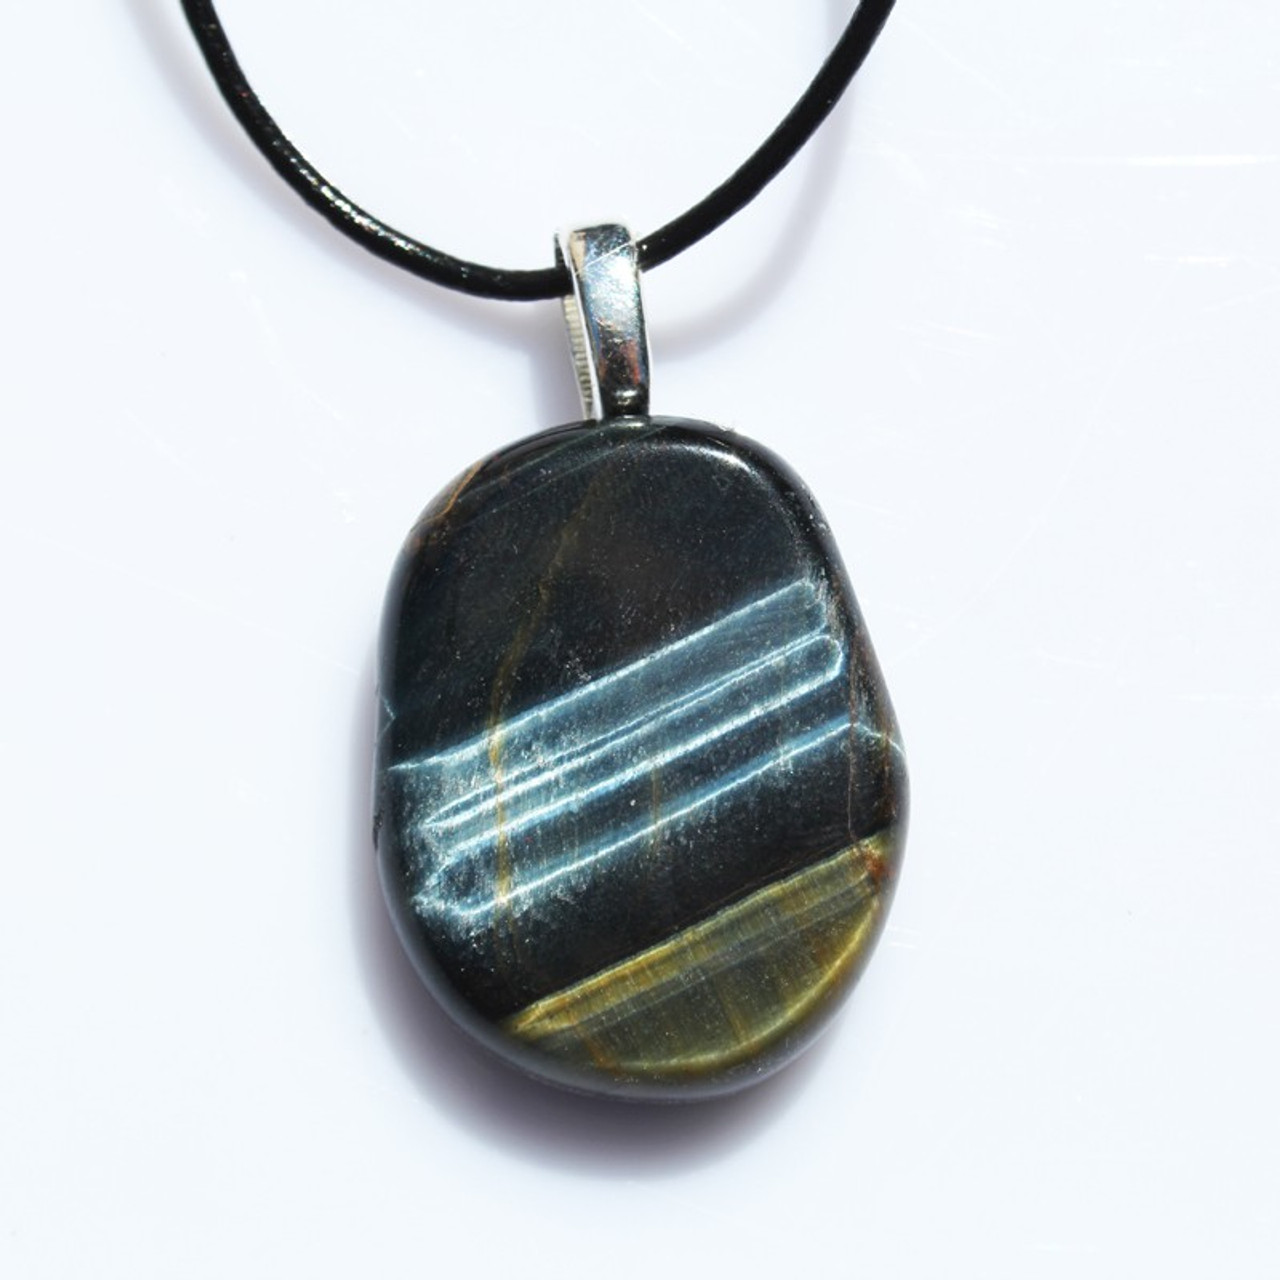 Blue Tiger's Eye Palm Stone on a Leather Thong Necklace - Made to Order